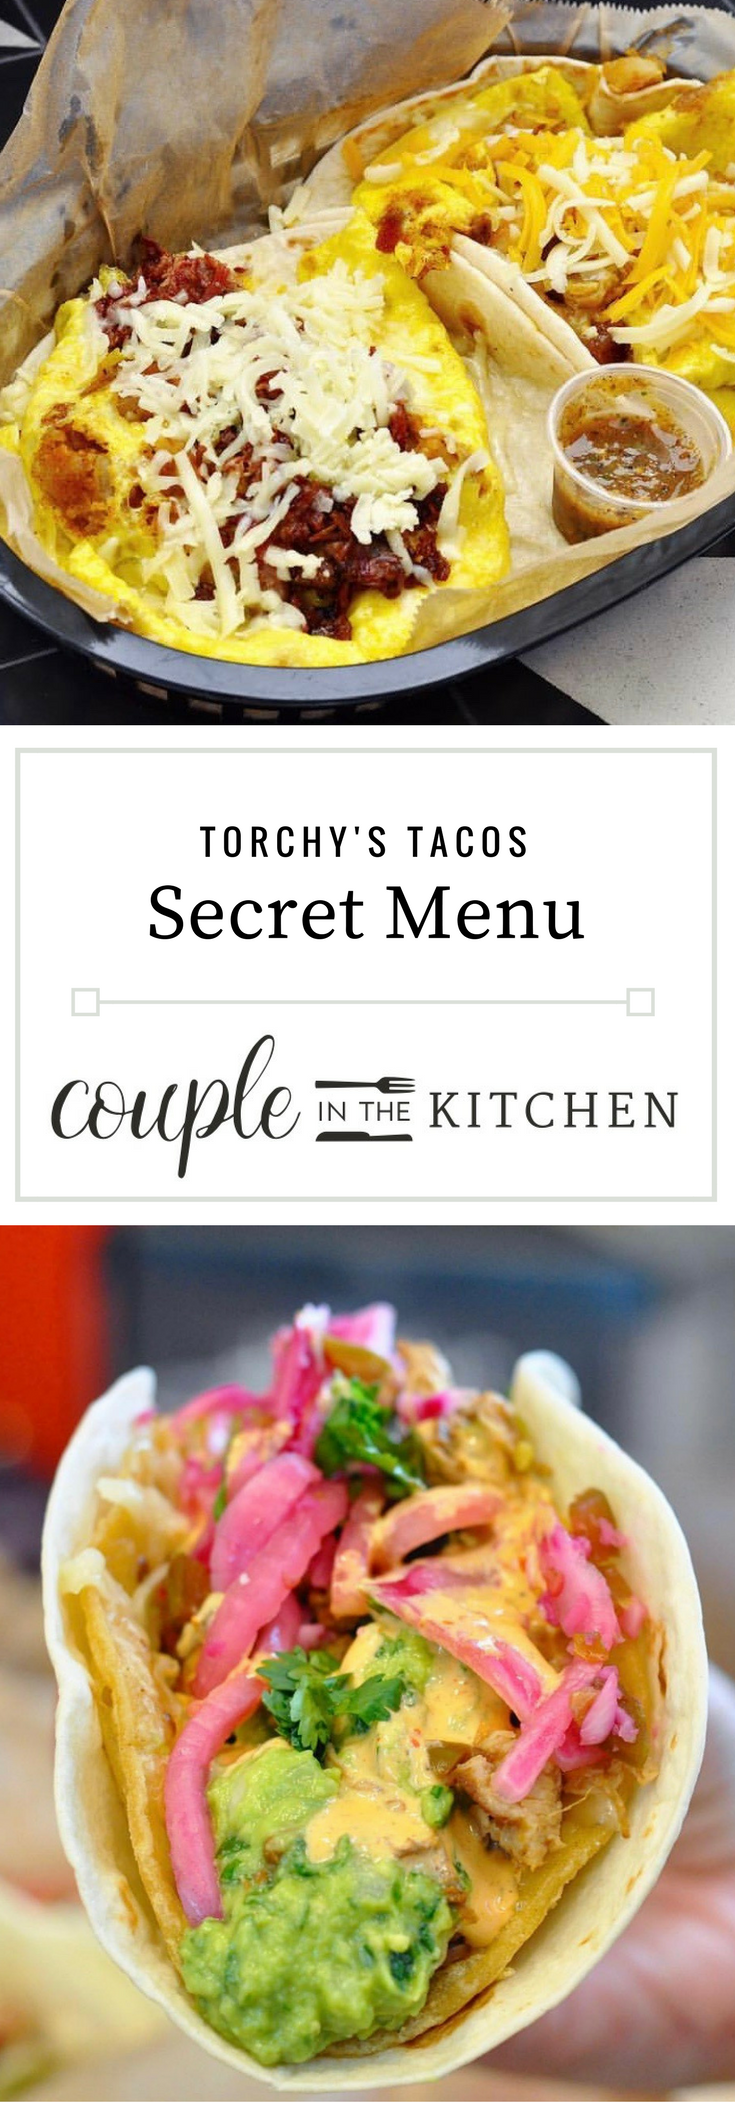 torchy's secret menu — couple in the kitchen